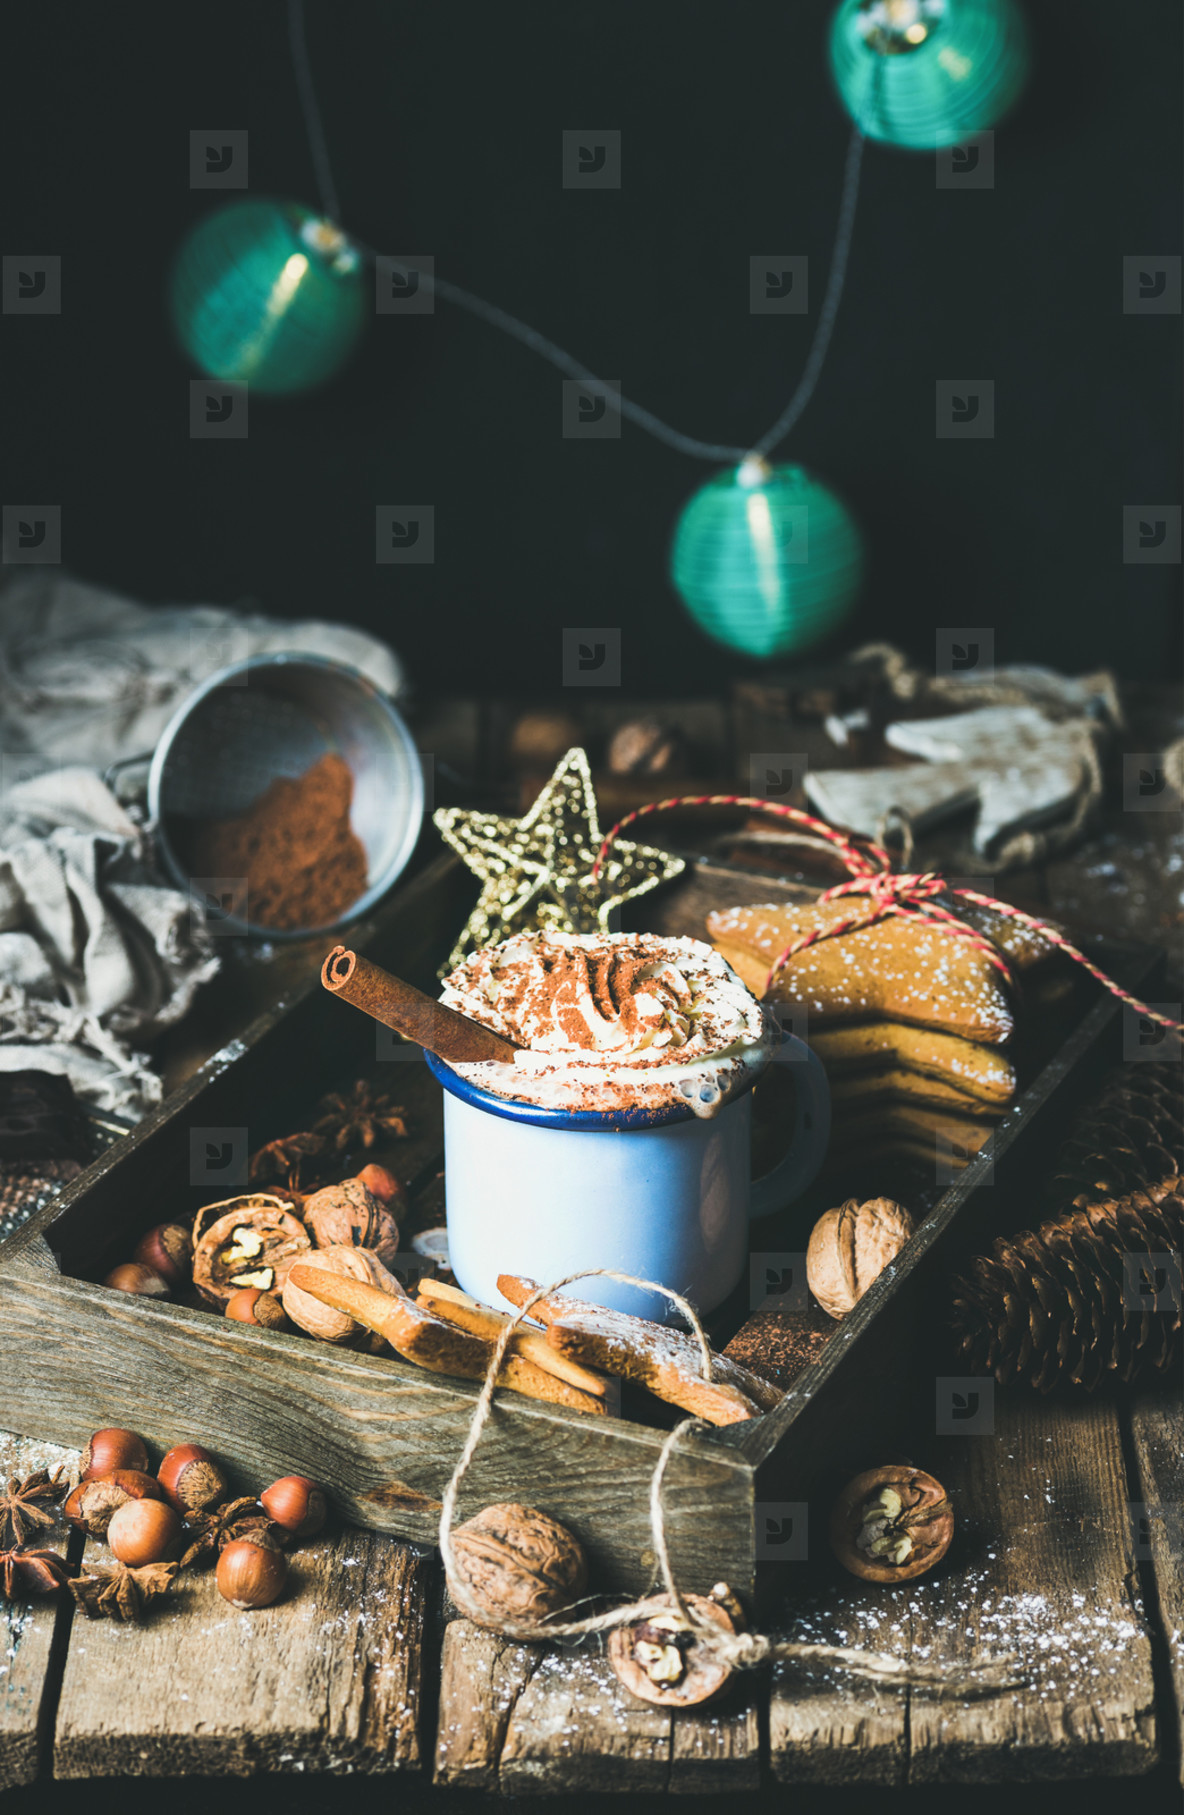 Mug of hot chocolate  garland with blue balls at background